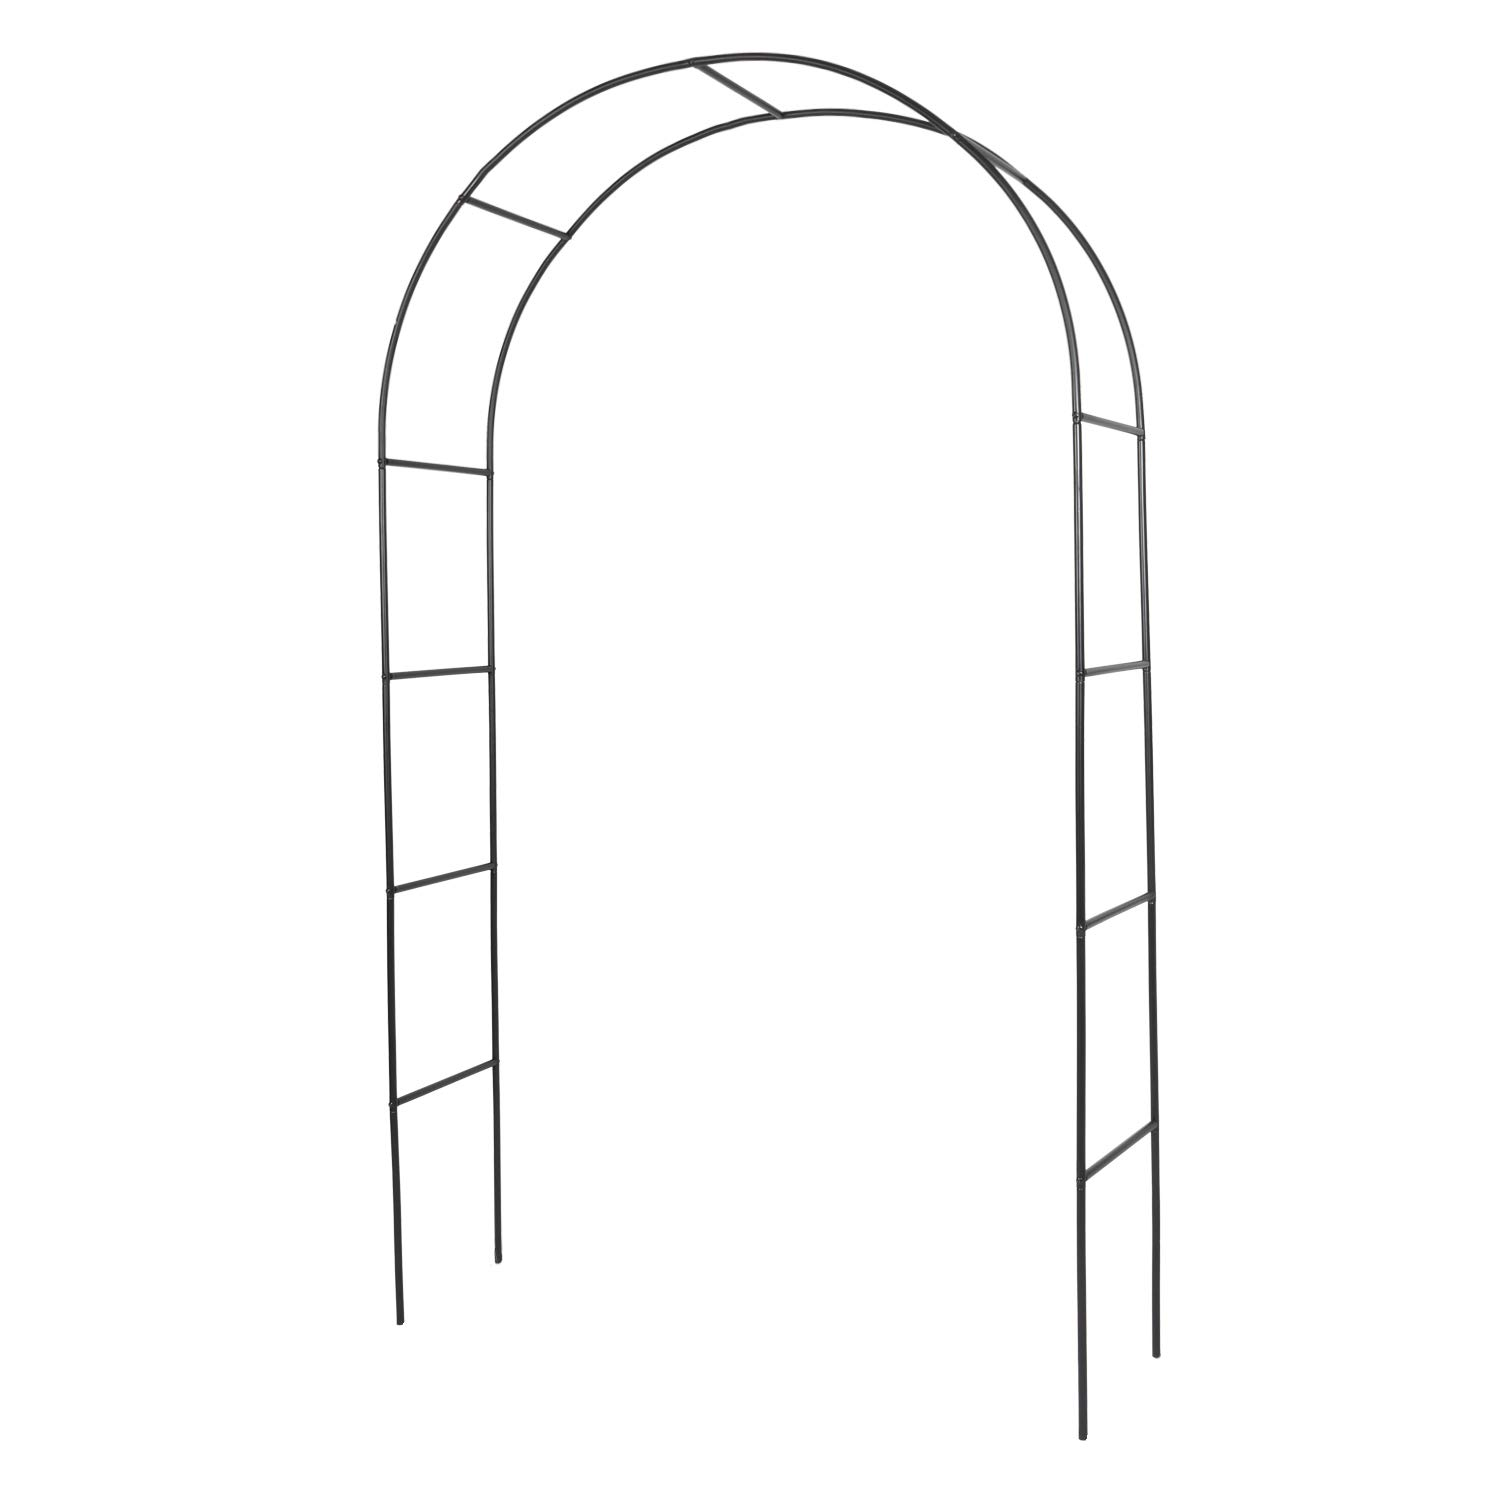 Kinbor Metal Garden Arbor Wedding Arch Outdoor Arch Trellis for Climbing Plants Roses Vines Bridal Party Decoration Lawn Backyard